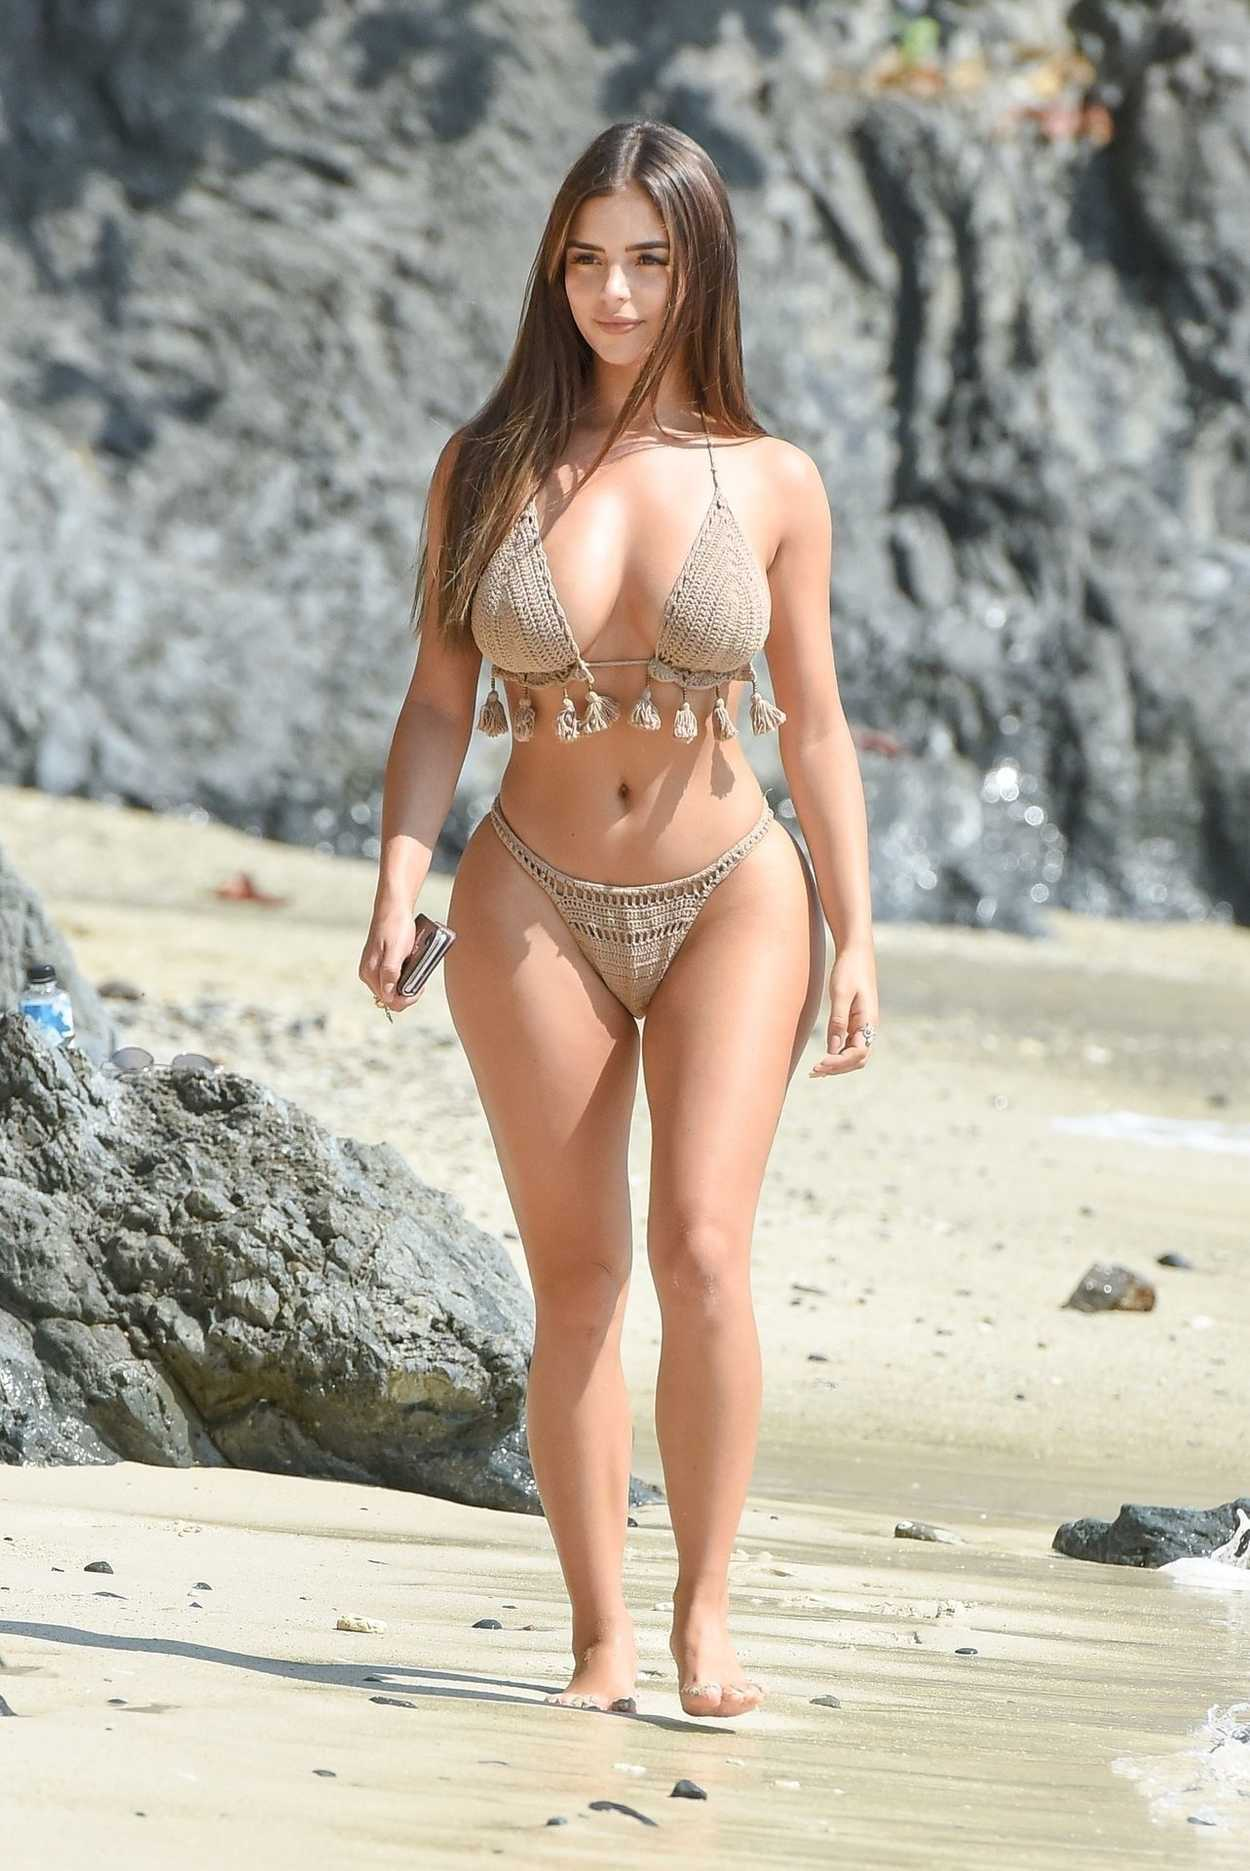 Demi Rose In A Beige Bikini On The Beach In Phuket